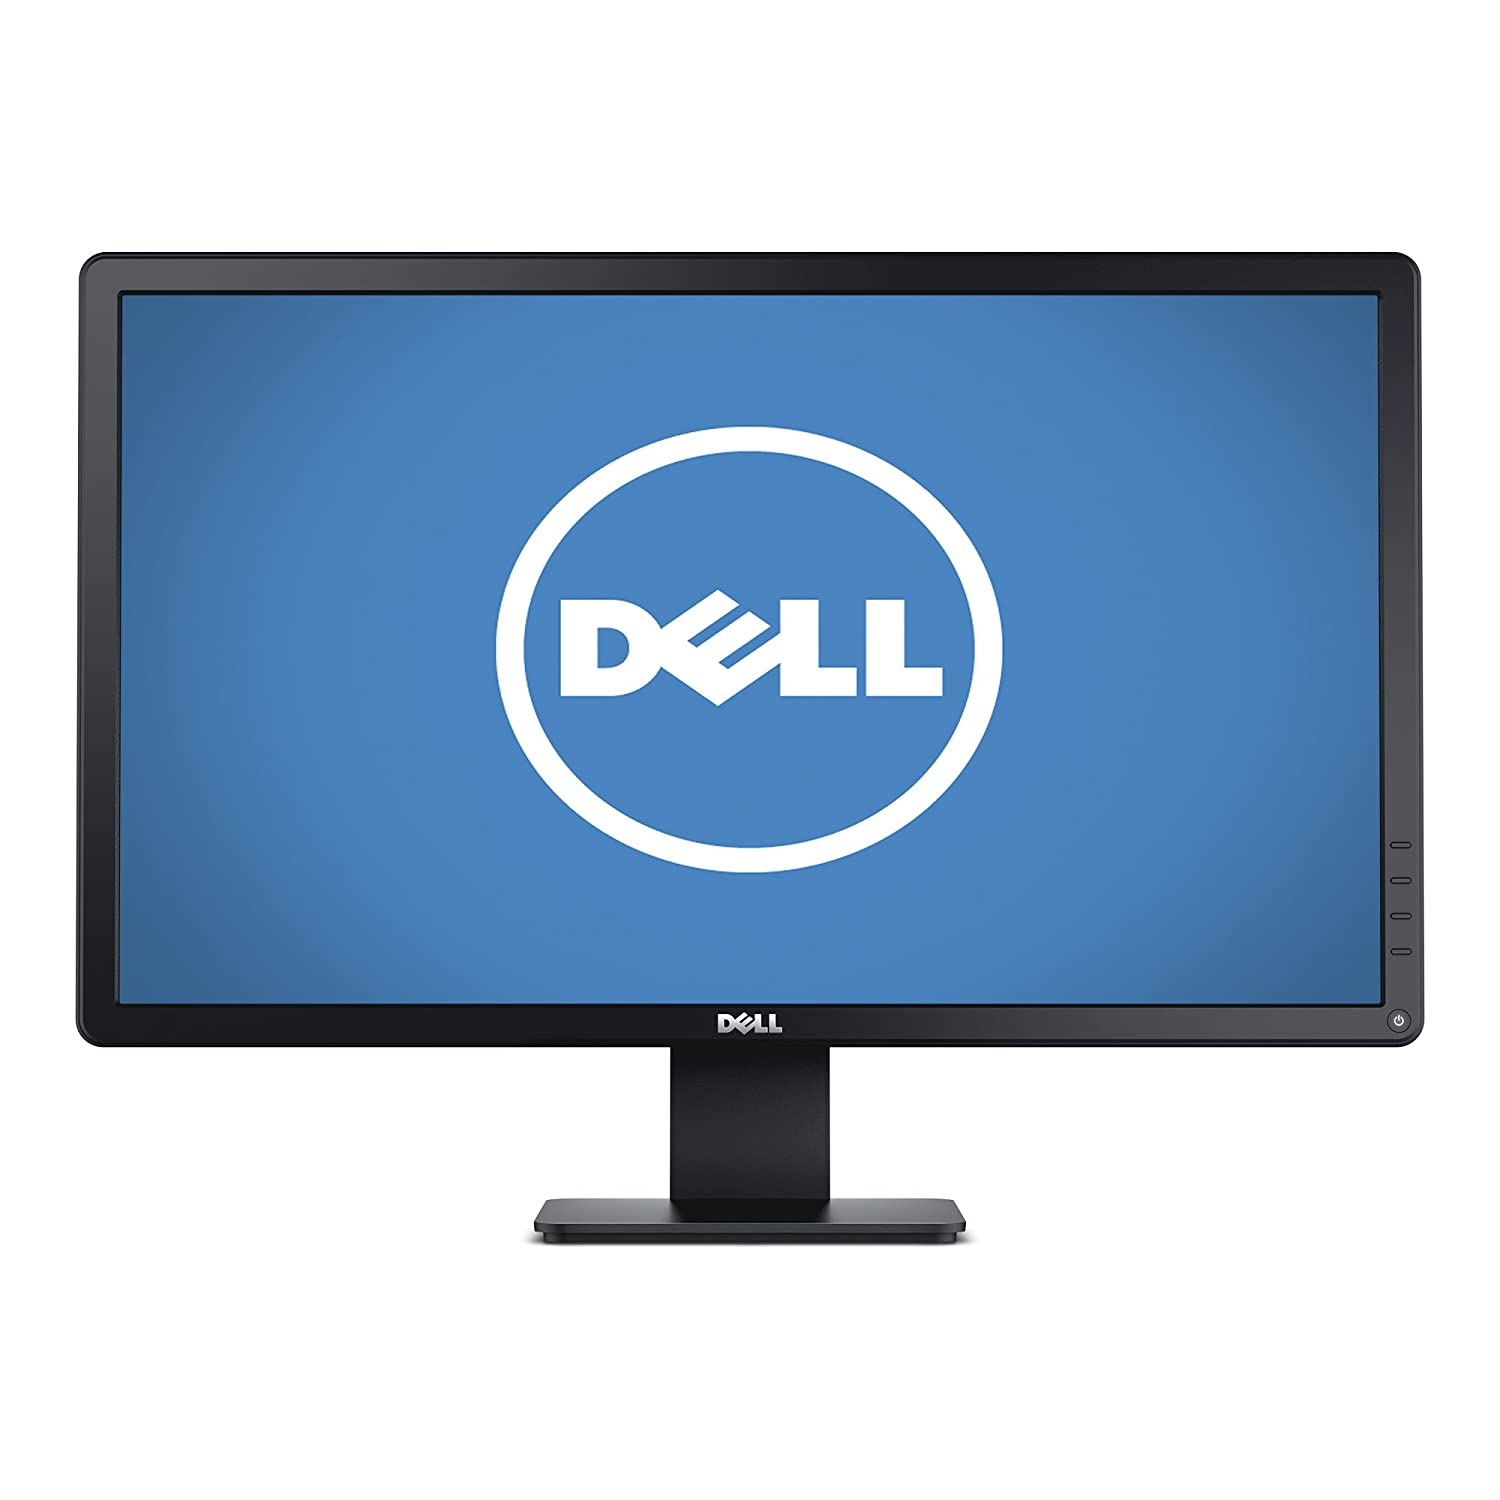 Dell E2414Hr 24-Inch LED-Lit Monitor